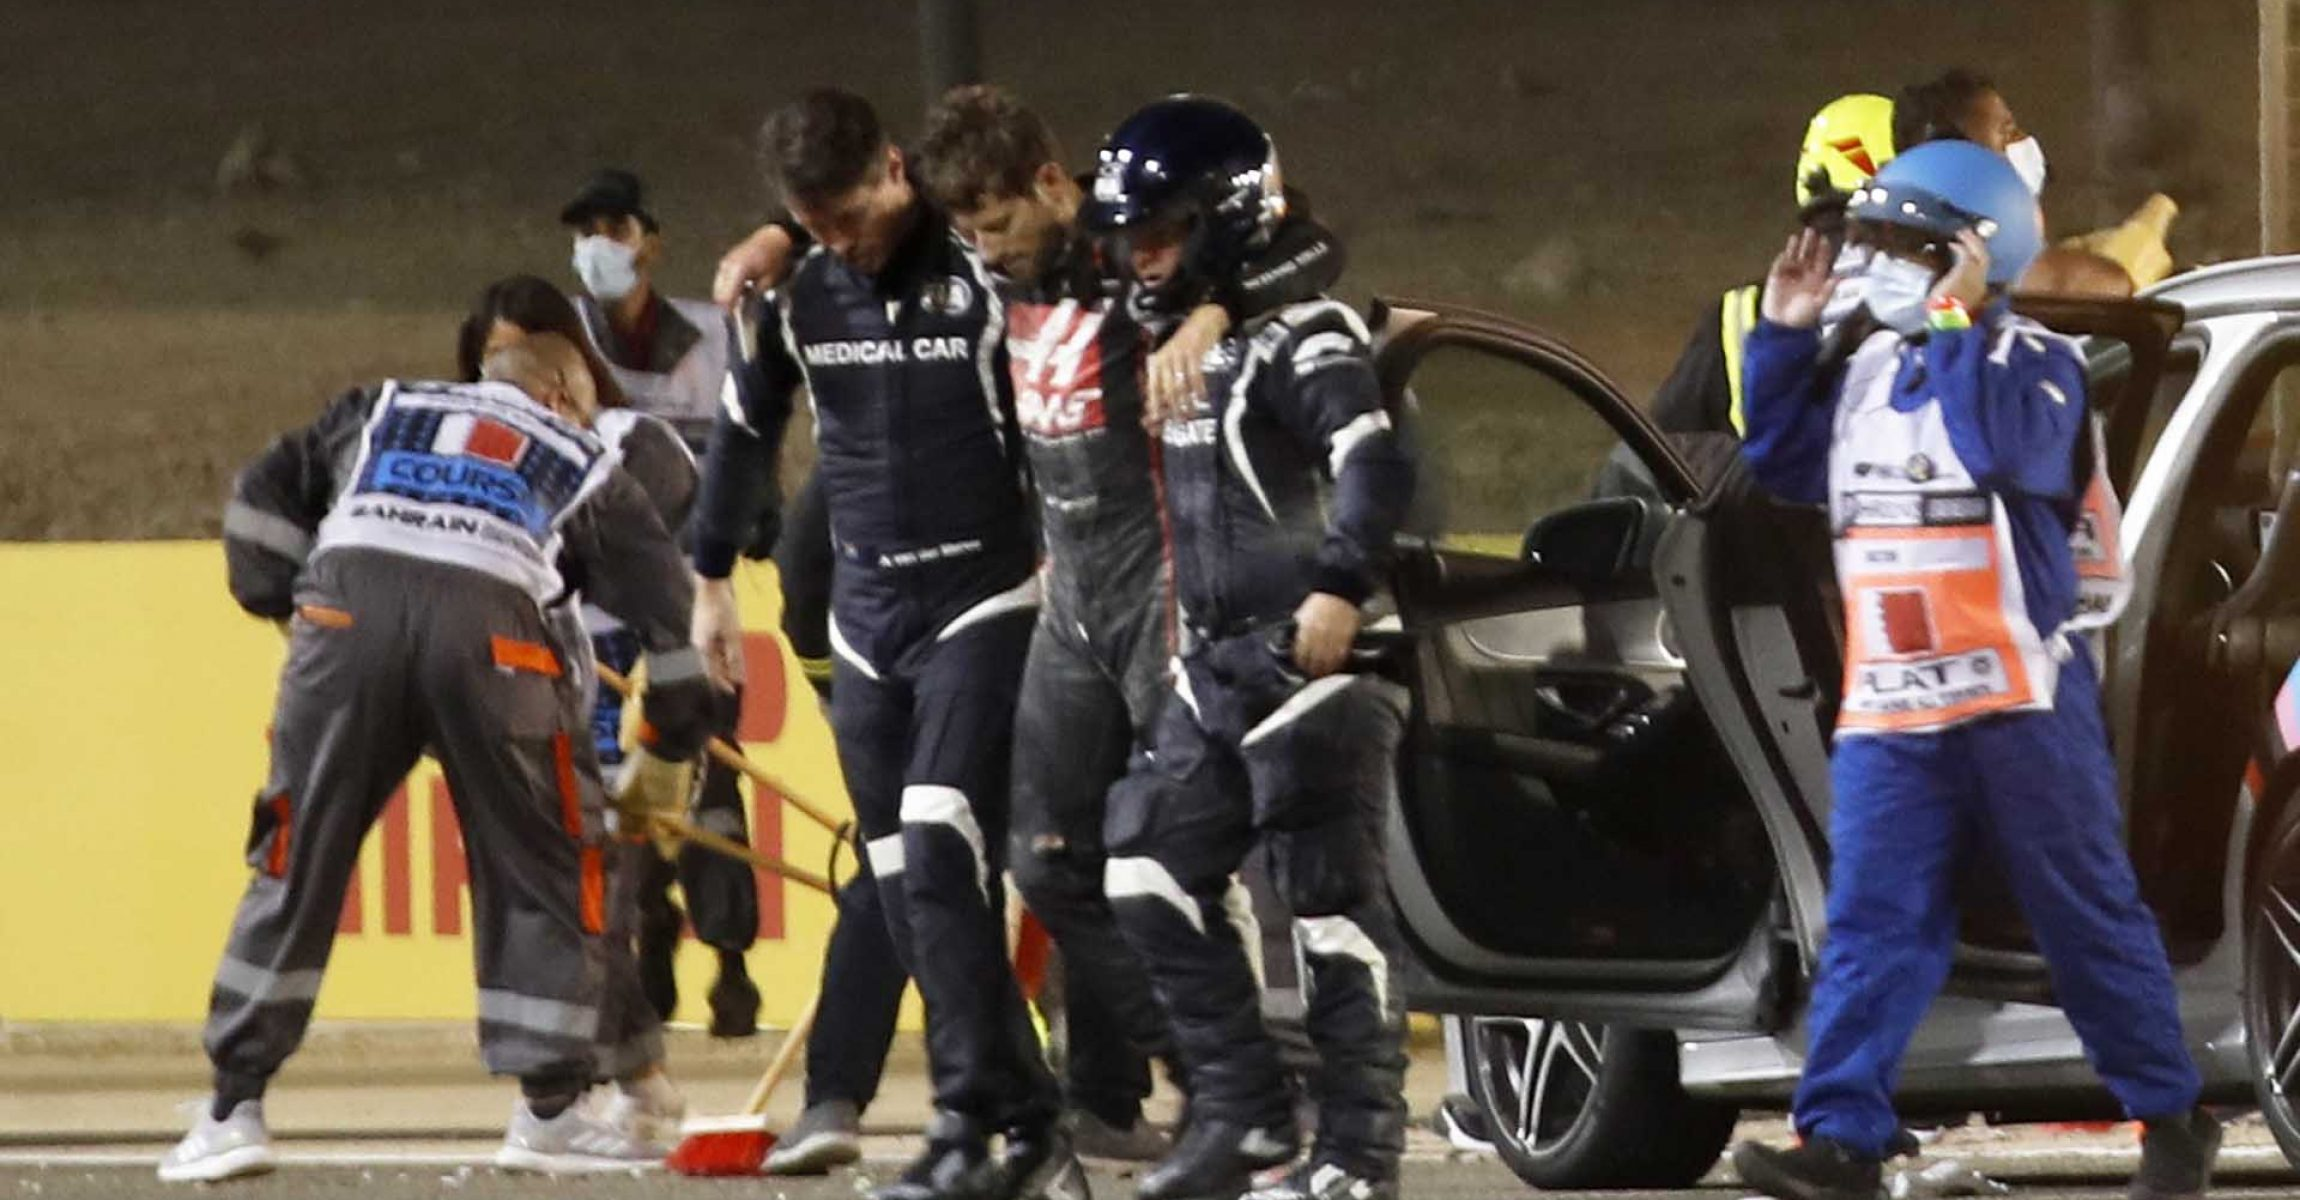 Formula One F1 - Bahrain Grand Prix - Bahrain International Circuit, Sakhir, Bahrain - November 29, 2020 Haas' Romain Grosjean is helped to walk away by medical officers after crashing out at the start of the race Pool via REUTERS/Hamad I Mohammed